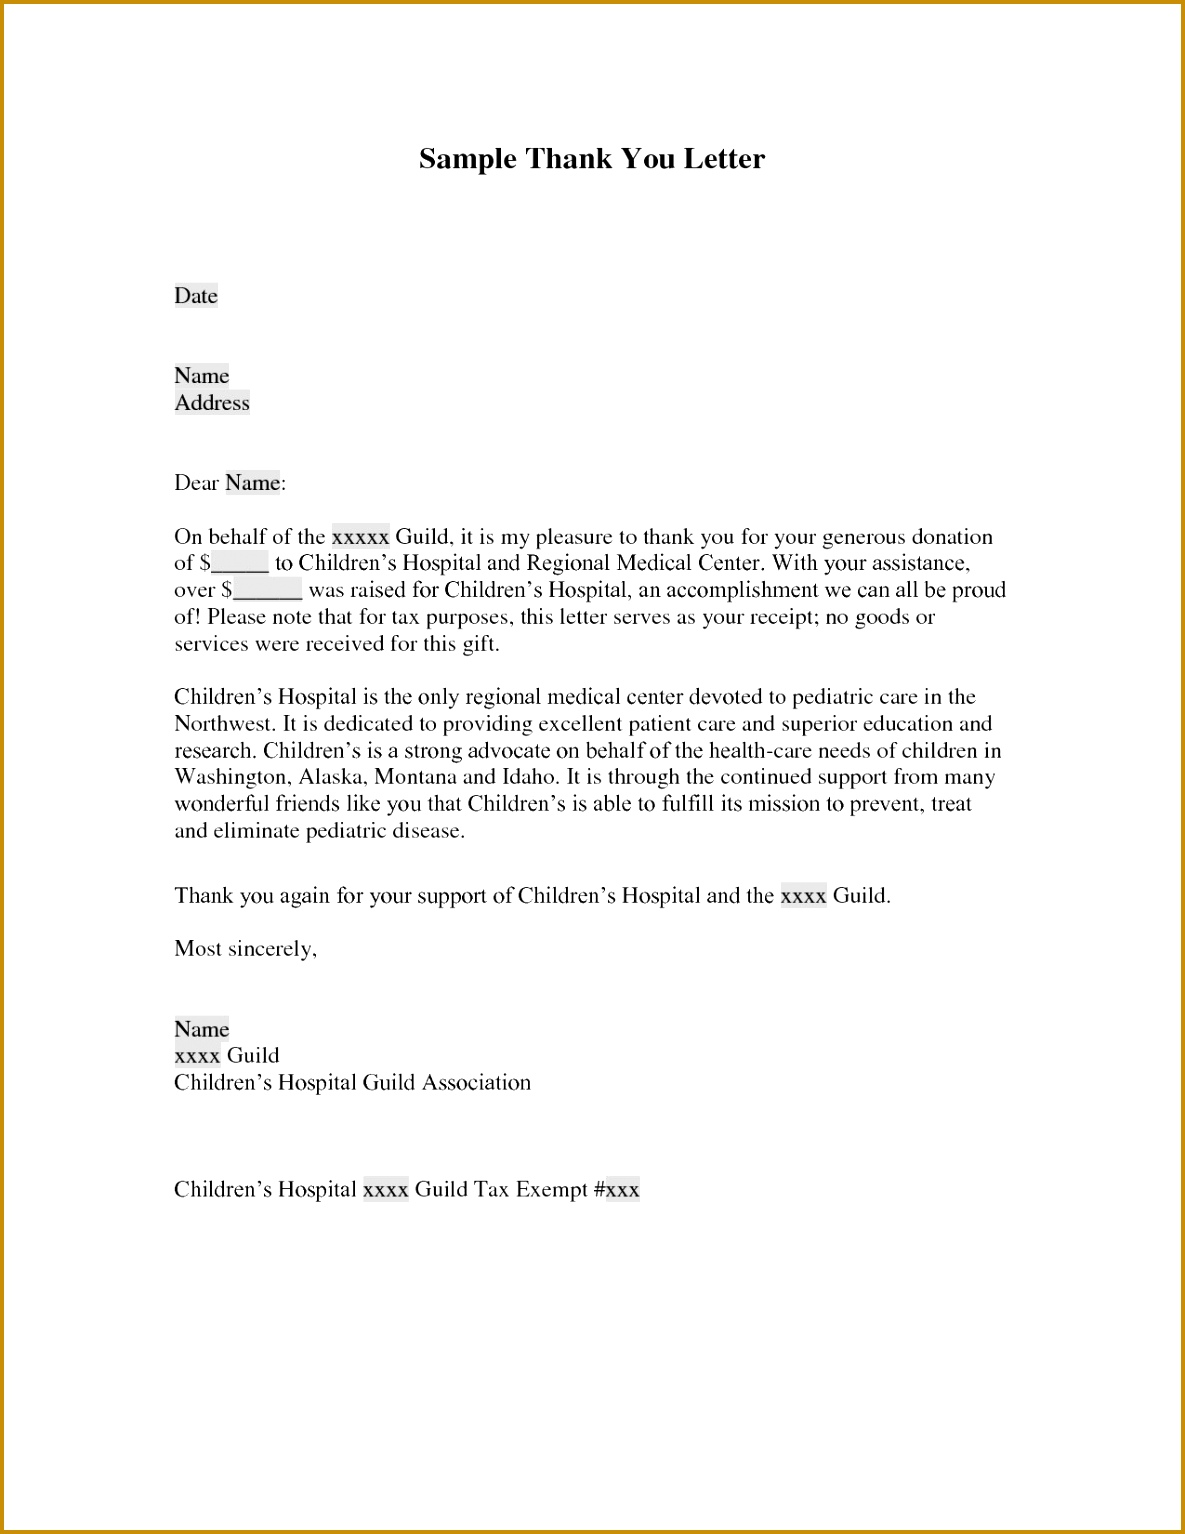 Thank You Letter New Sample Thank You Letter for Donation to School Pdf format 15341185